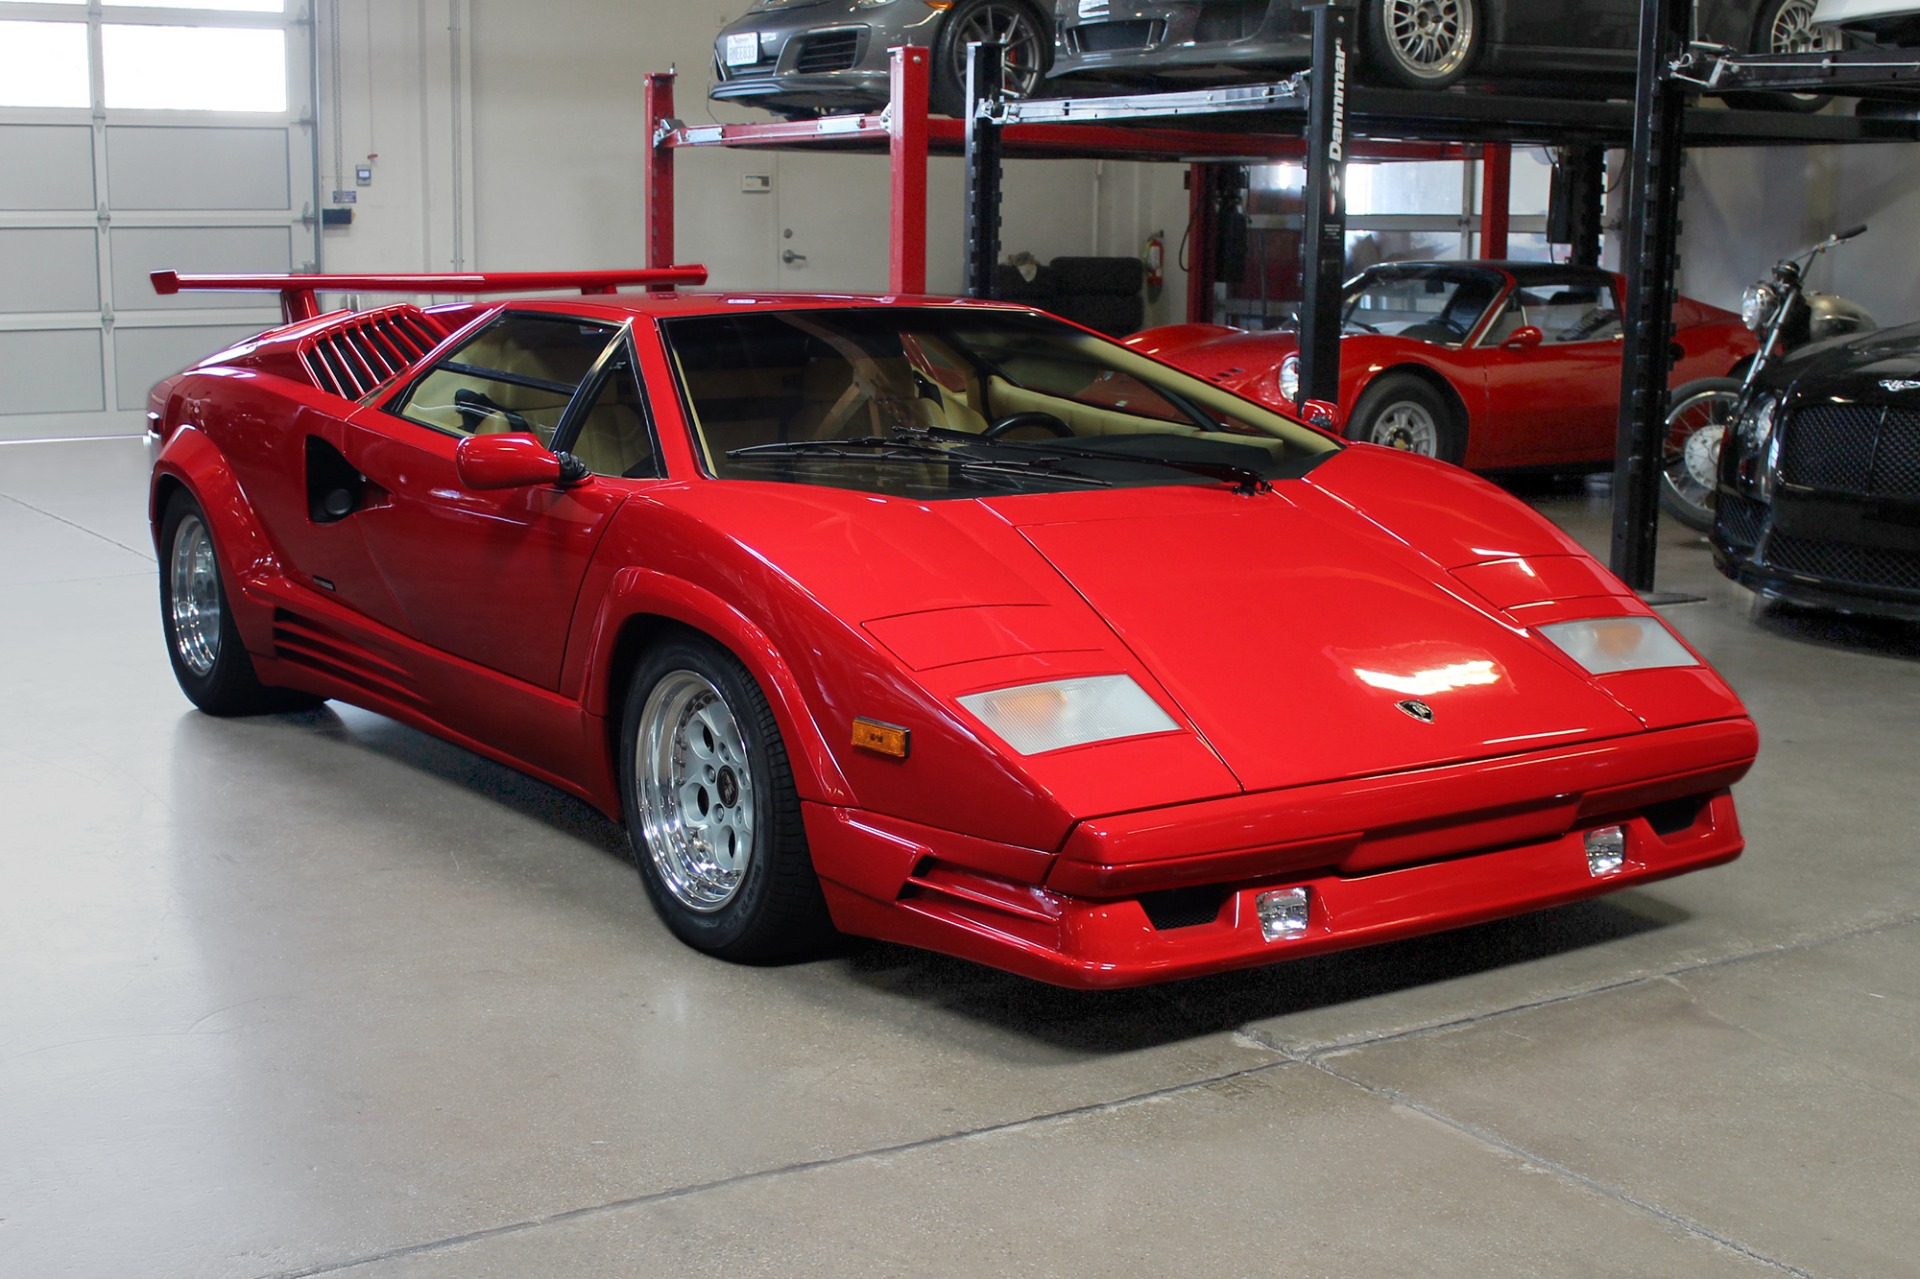 Used 1989 Lamborghini Countach Anniversary for sale Sold at San Francisco Sports Cars in San Carlos CA 94070 1